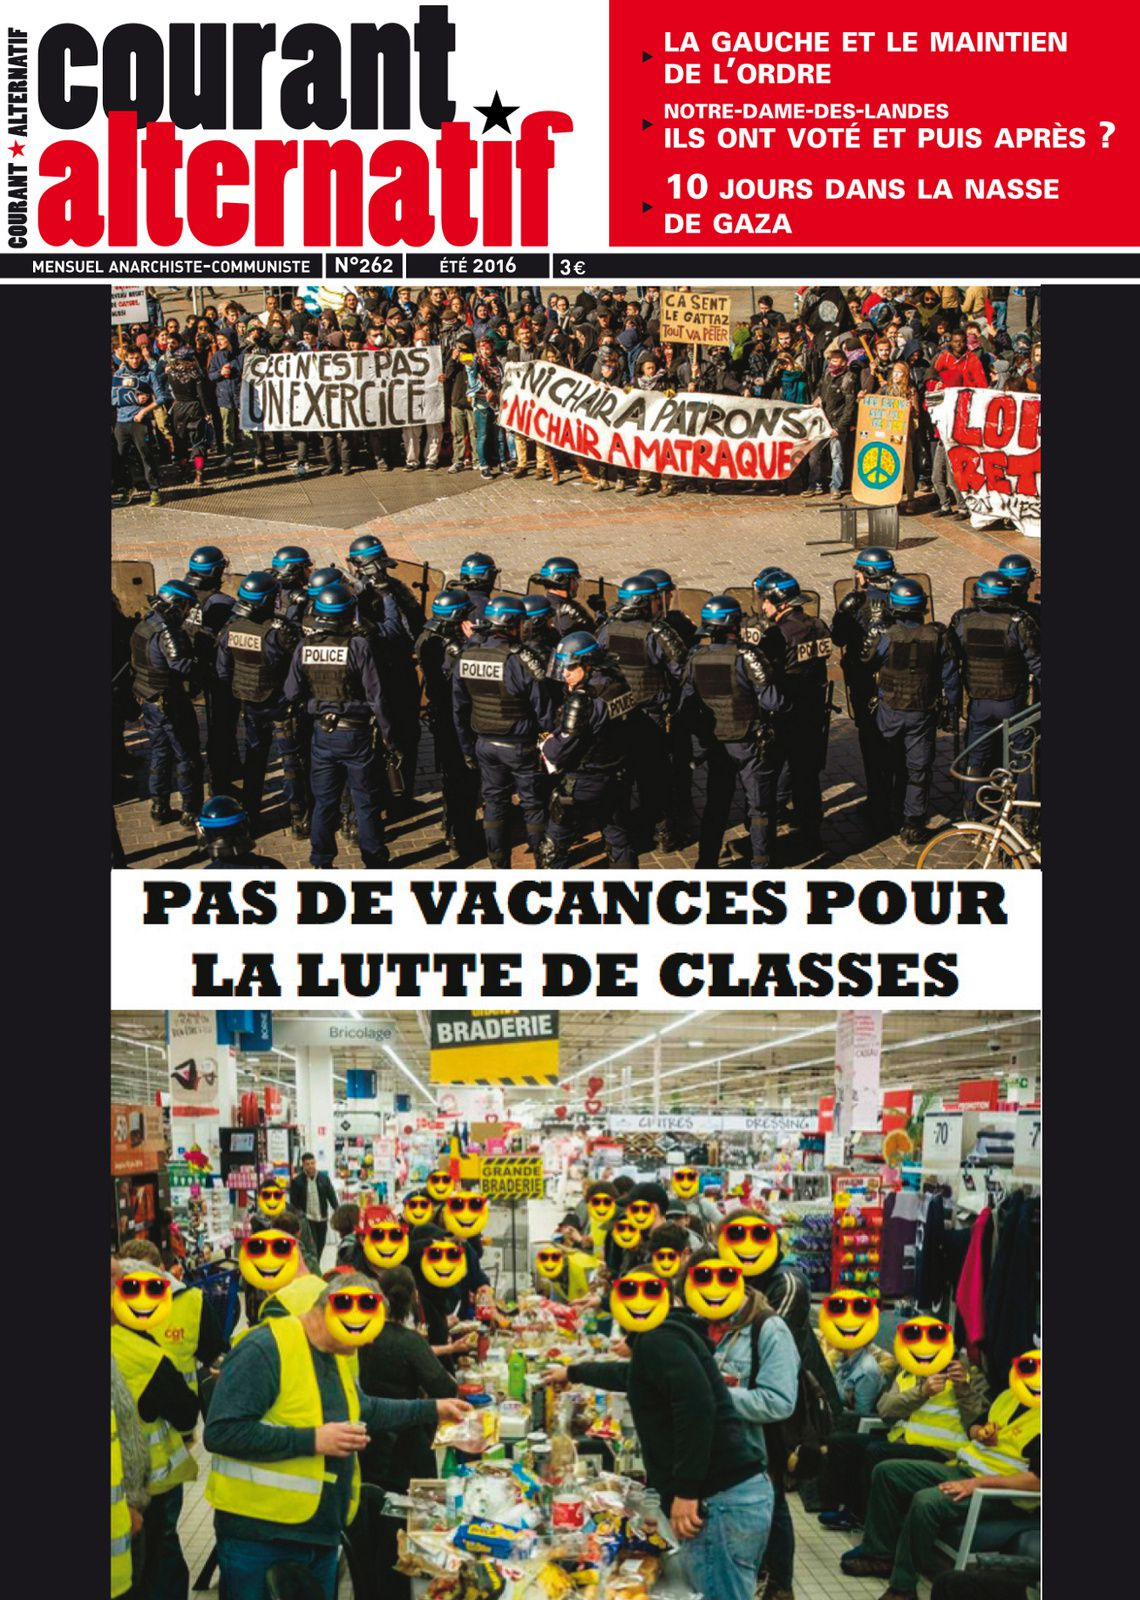 Courant alternatif n° 262 est sorti